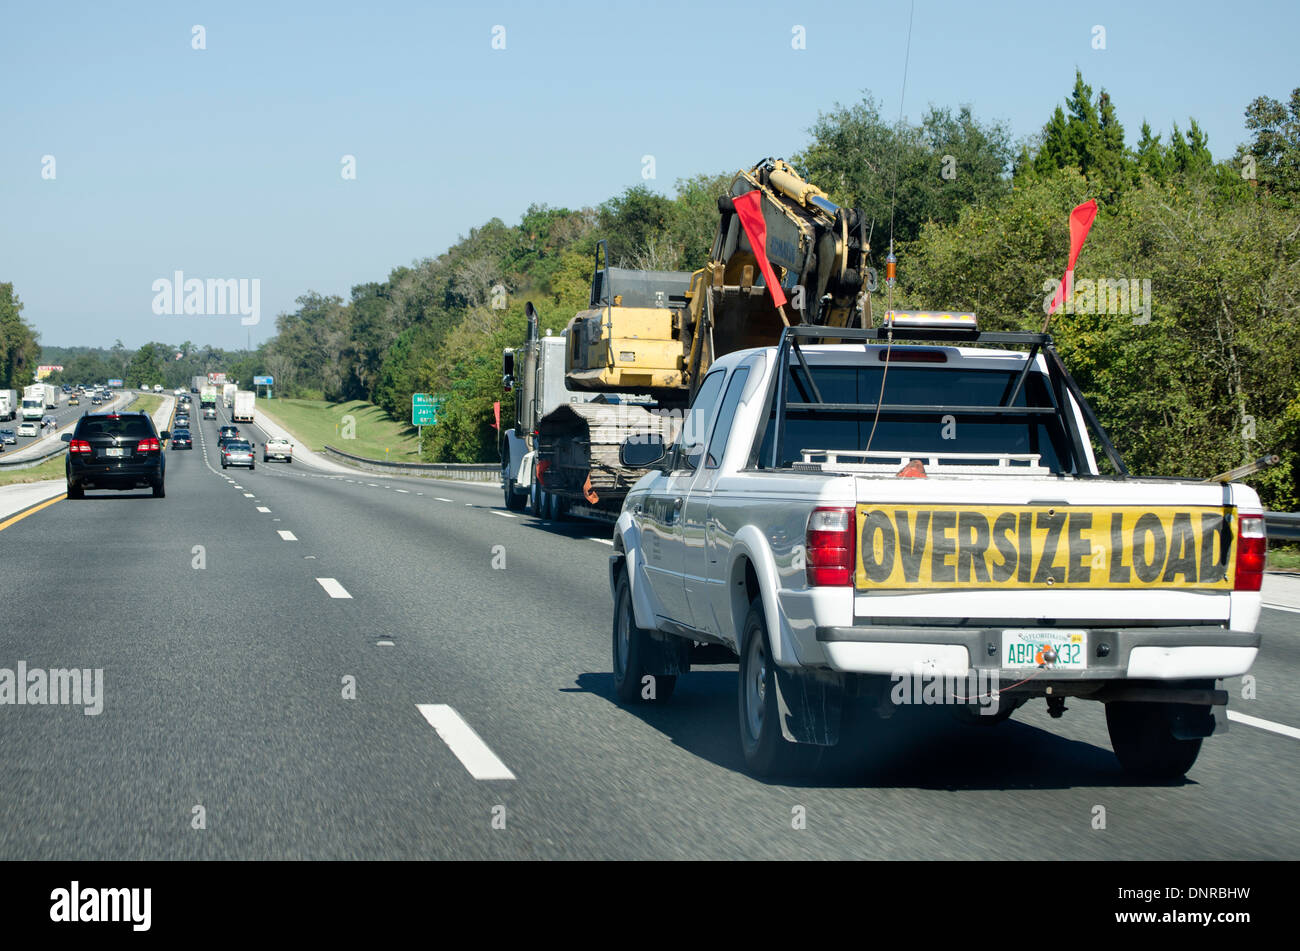 Escort vehicle truck with oversize load on I 75 highway America USA - Stock Image